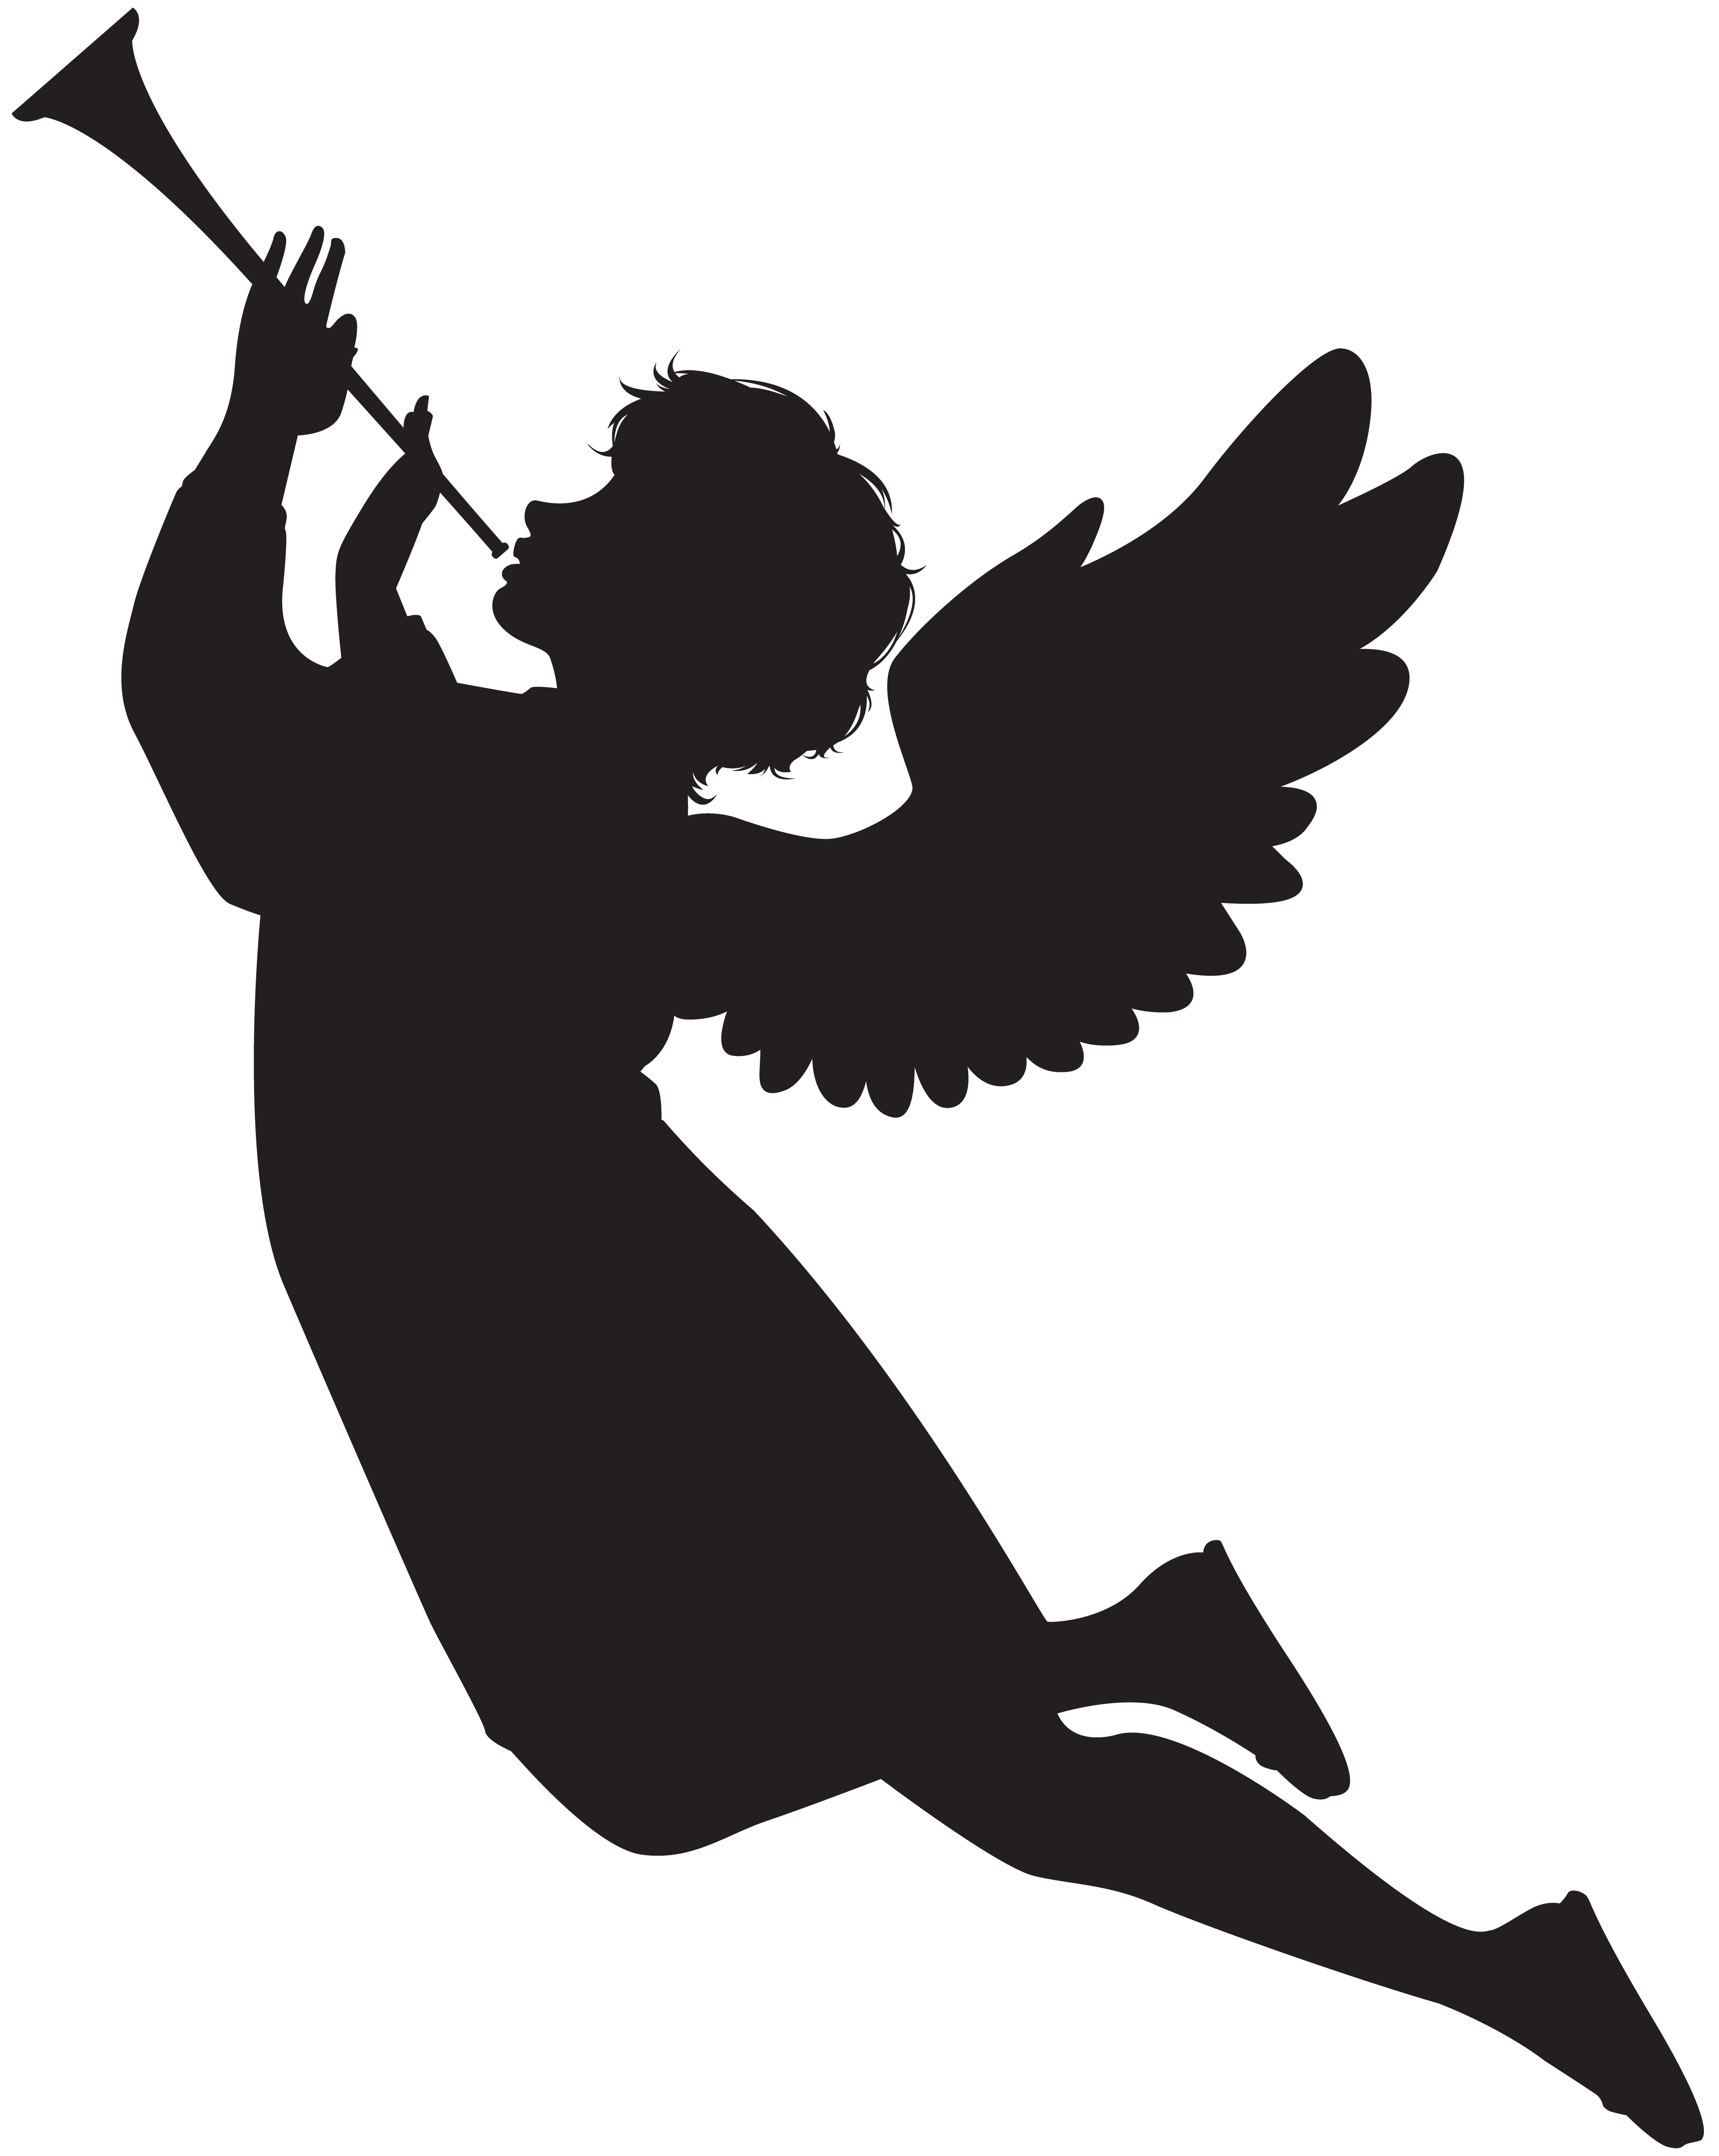 Fanfare clipart clipart royalty free Angel Silhouette Clip art - Angel with Fanfare Silhouette PNG Clip ... clipart royalty free